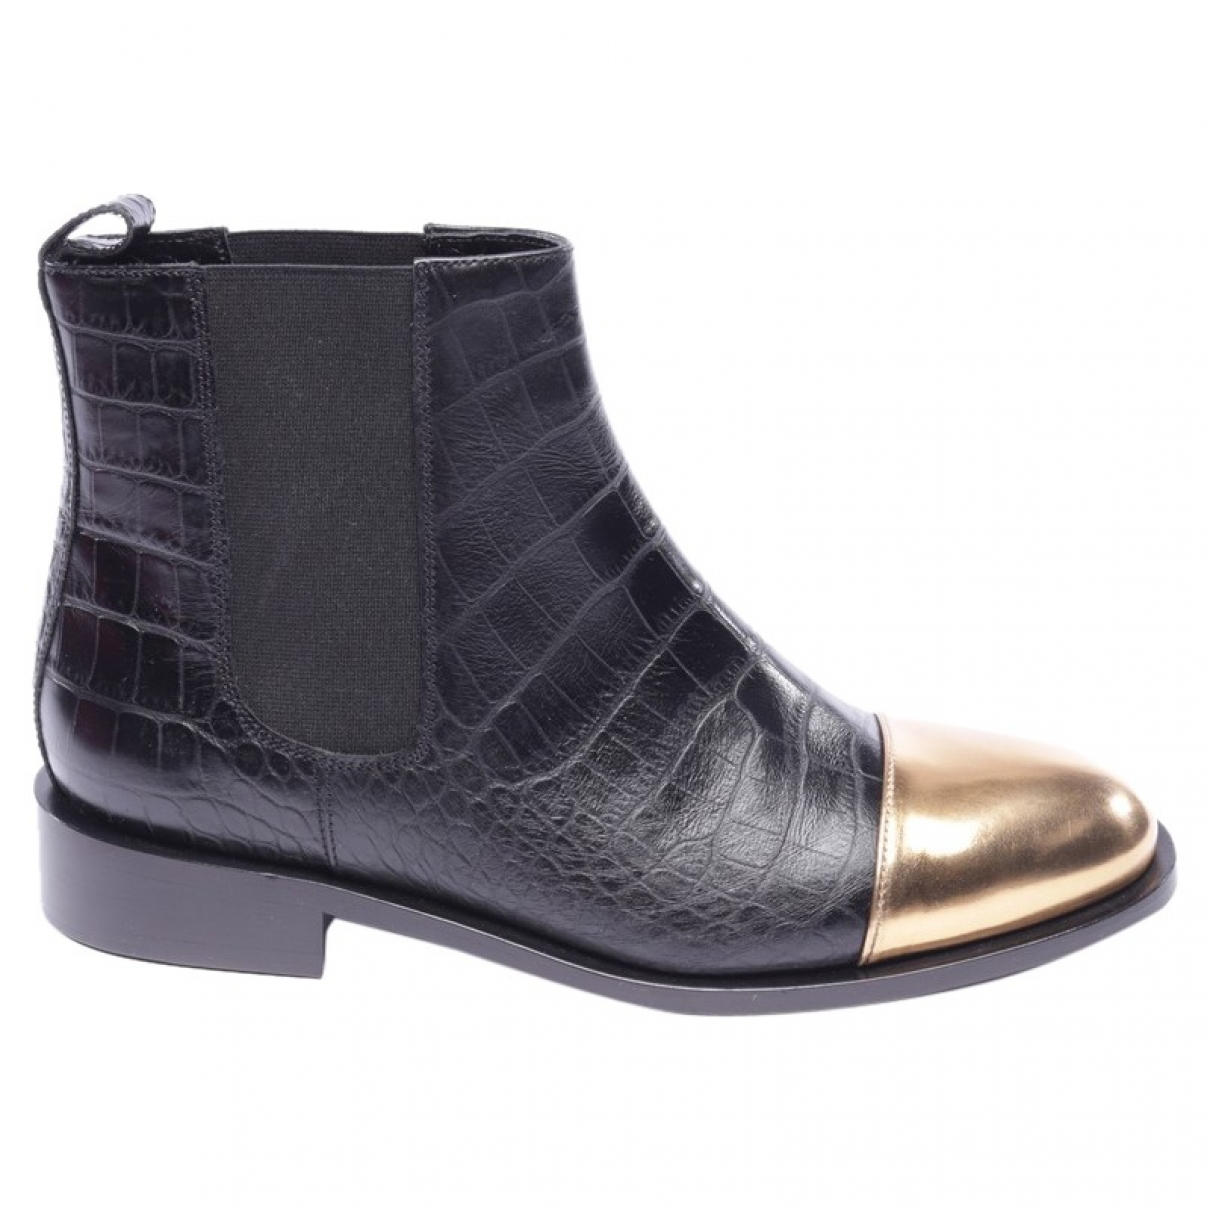 Marni \N Black Leather Ankle boots for Women 38.5 EU